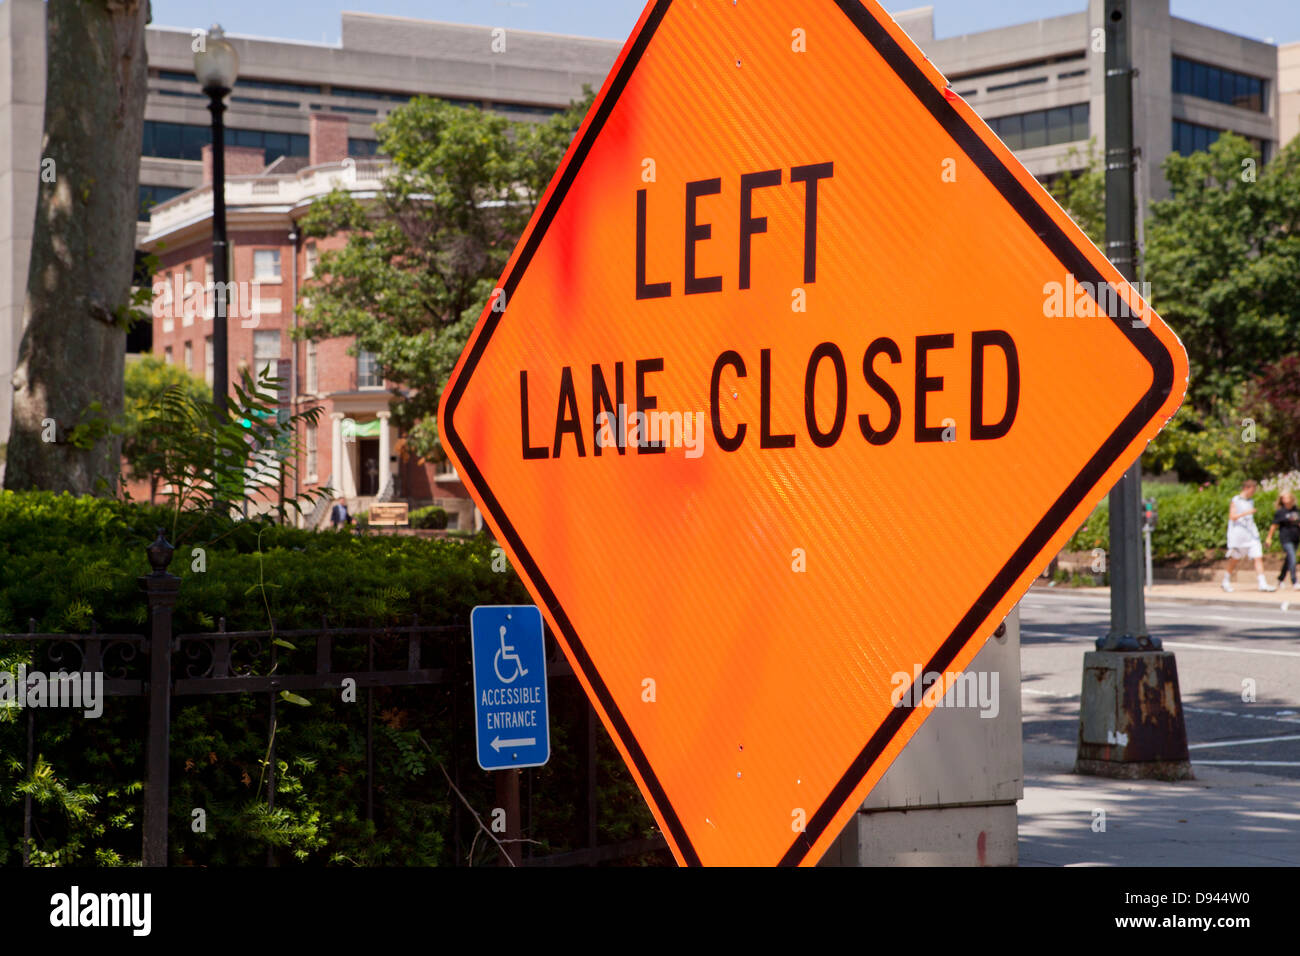 Left Lane Closed road sign - Stock Image